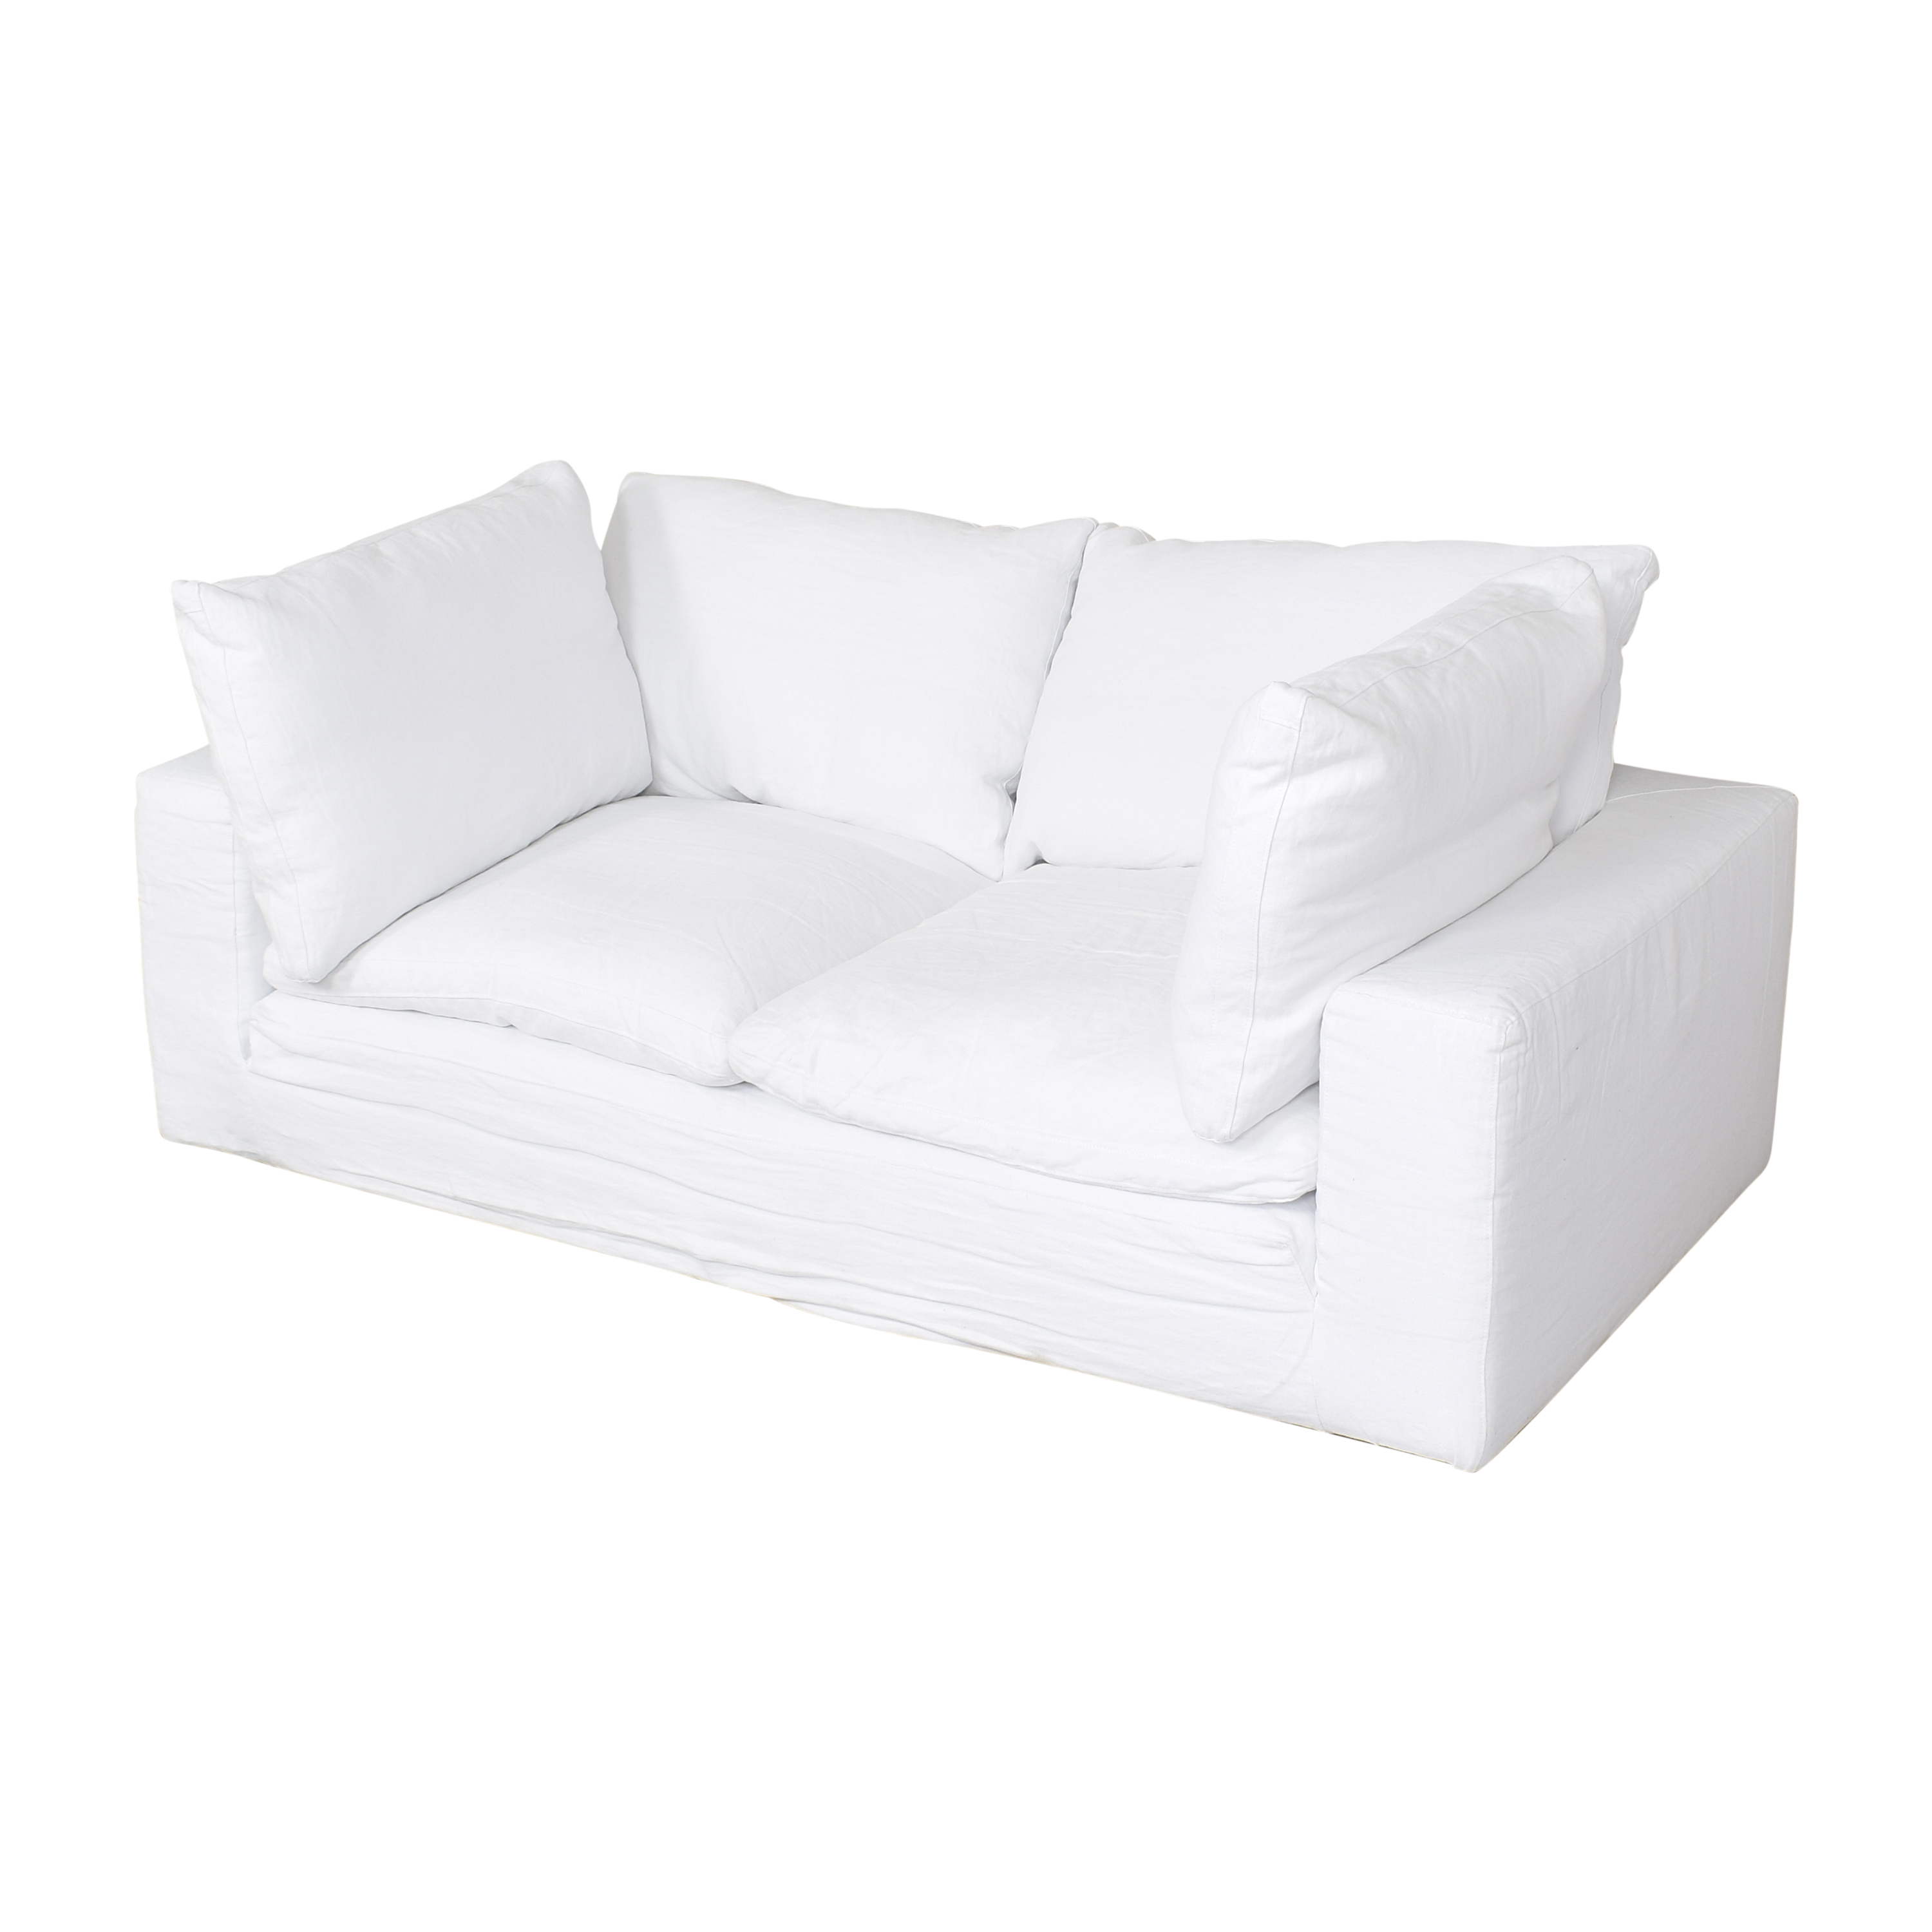 Restoration Hardware Restoration Hardware Cloud Two Seat Cushion Sofa for sale